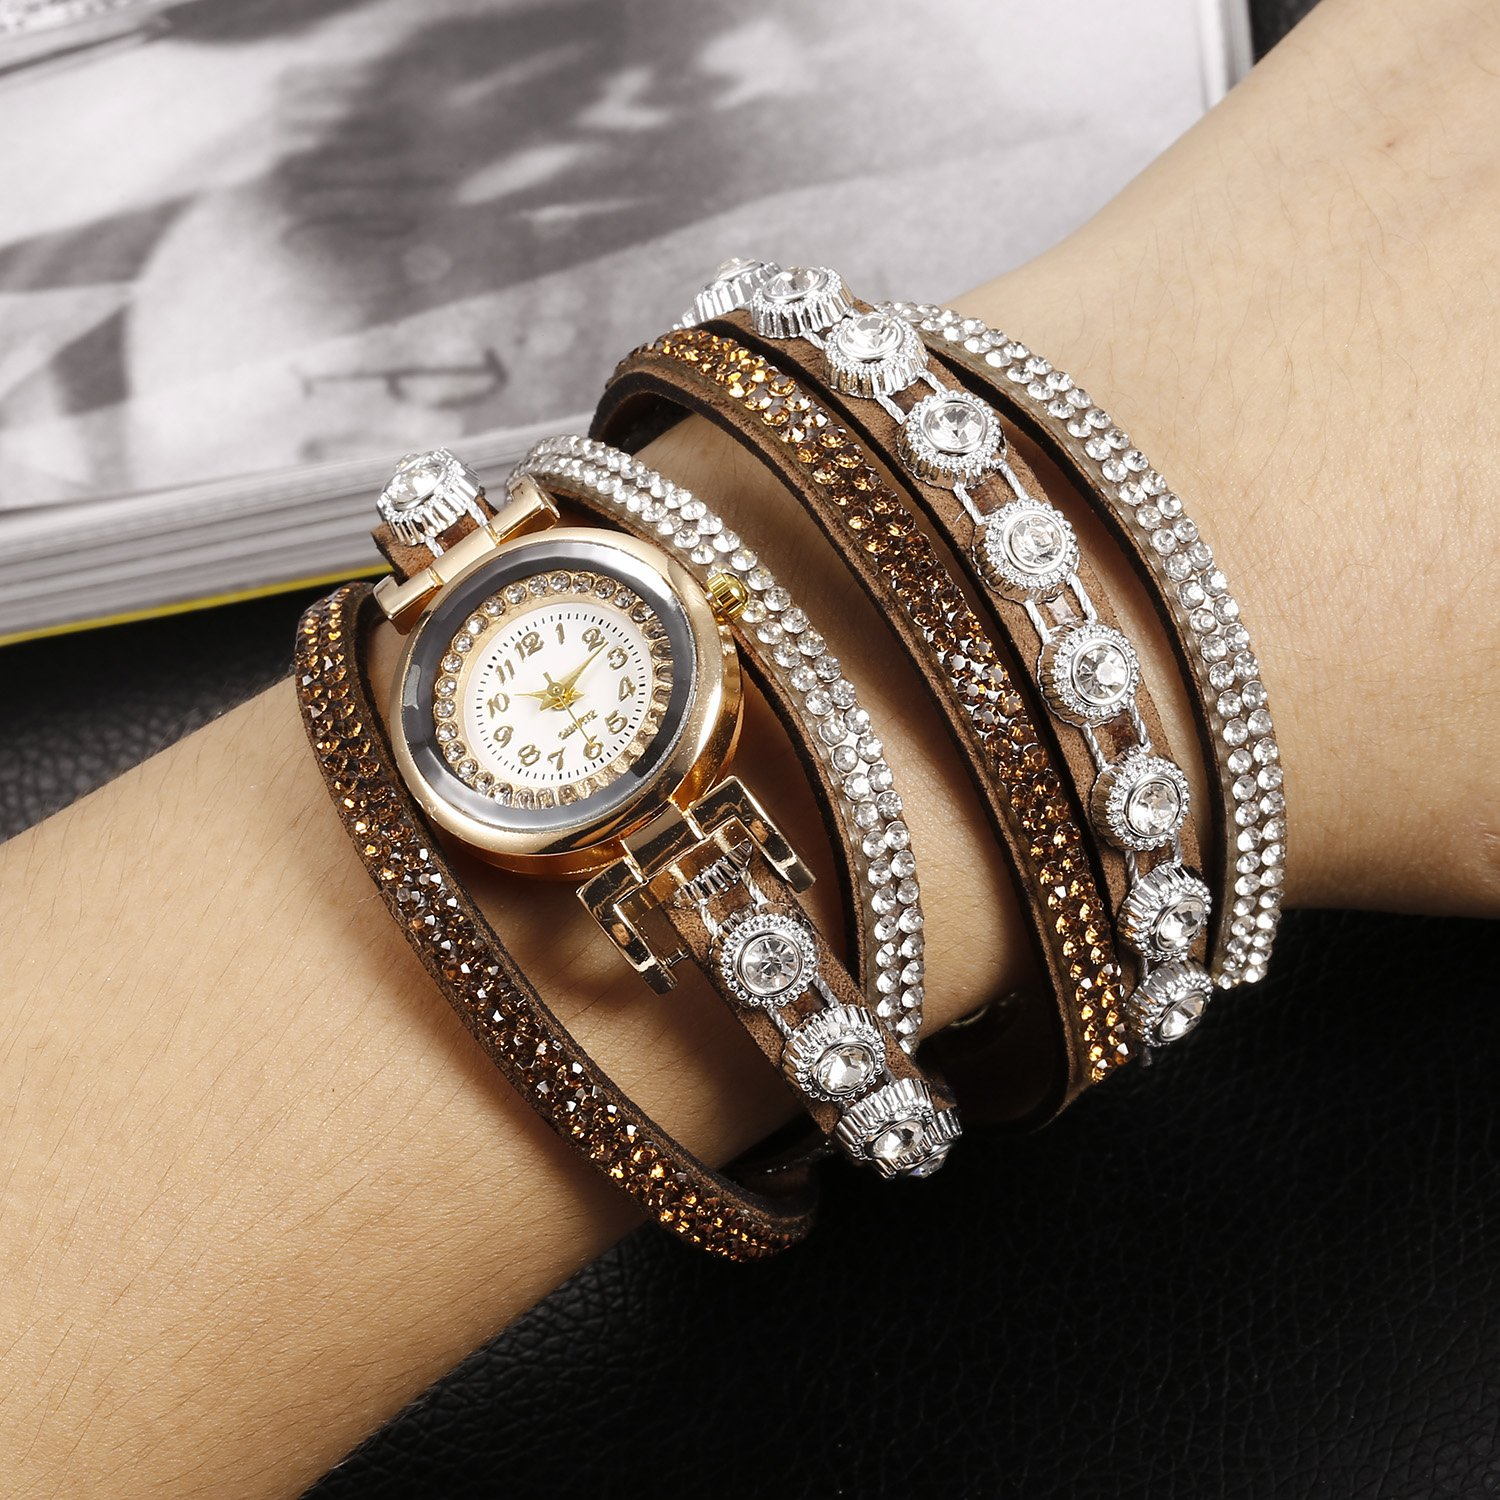 Zouvo Women Fashion Casual Decor Round Rhinestone Bracelet Watch (Coffee)